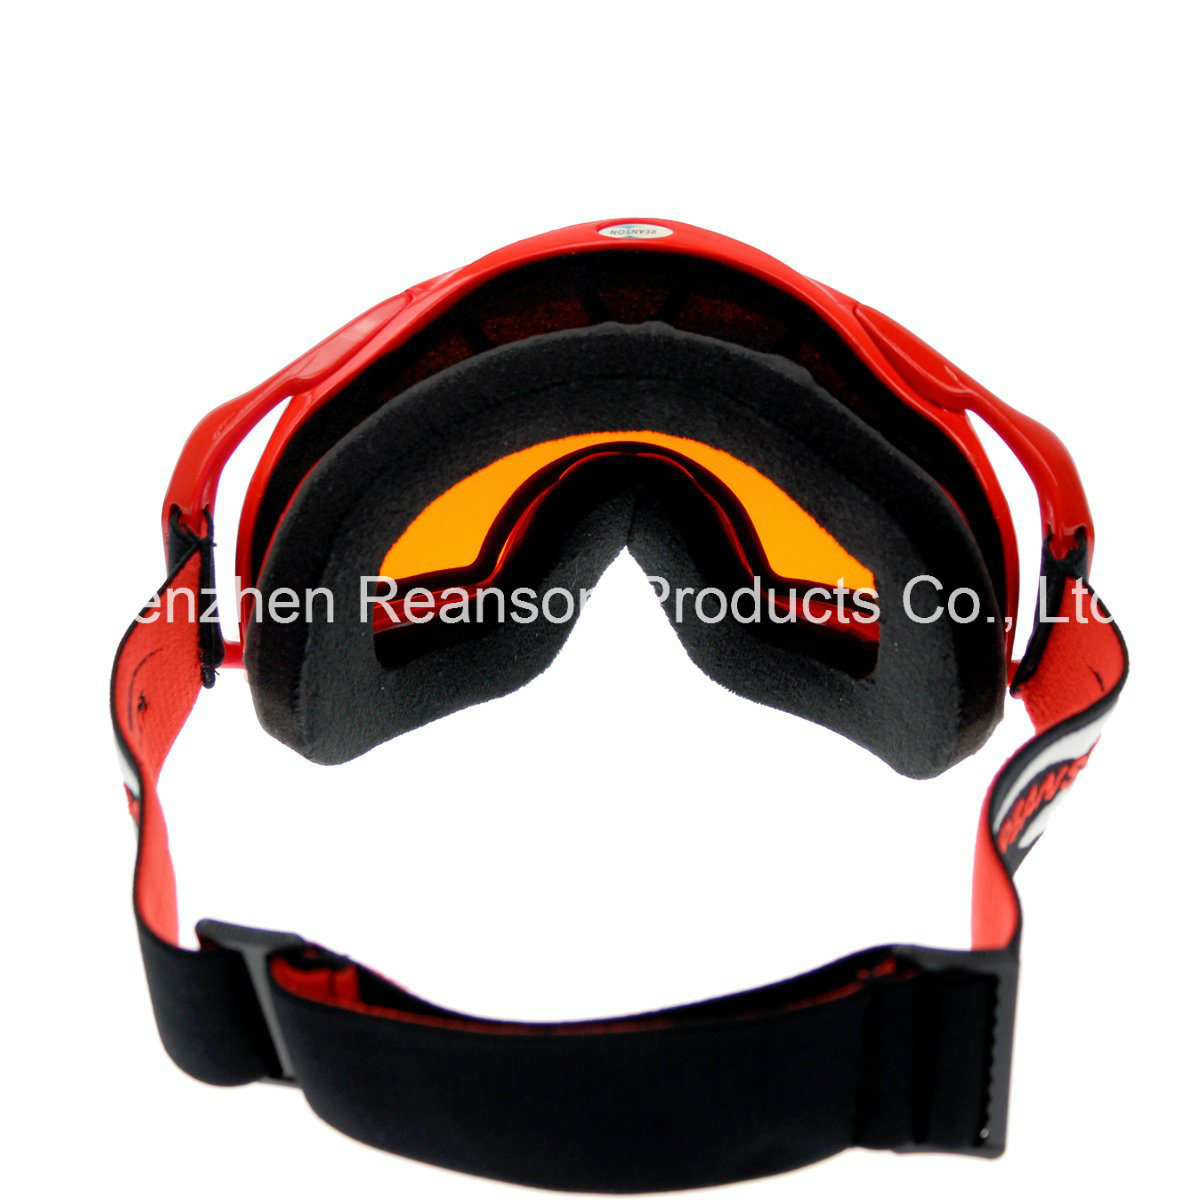 Reanson Professional Anti-Fog Double Lenses Snowboard Skiing Goggles